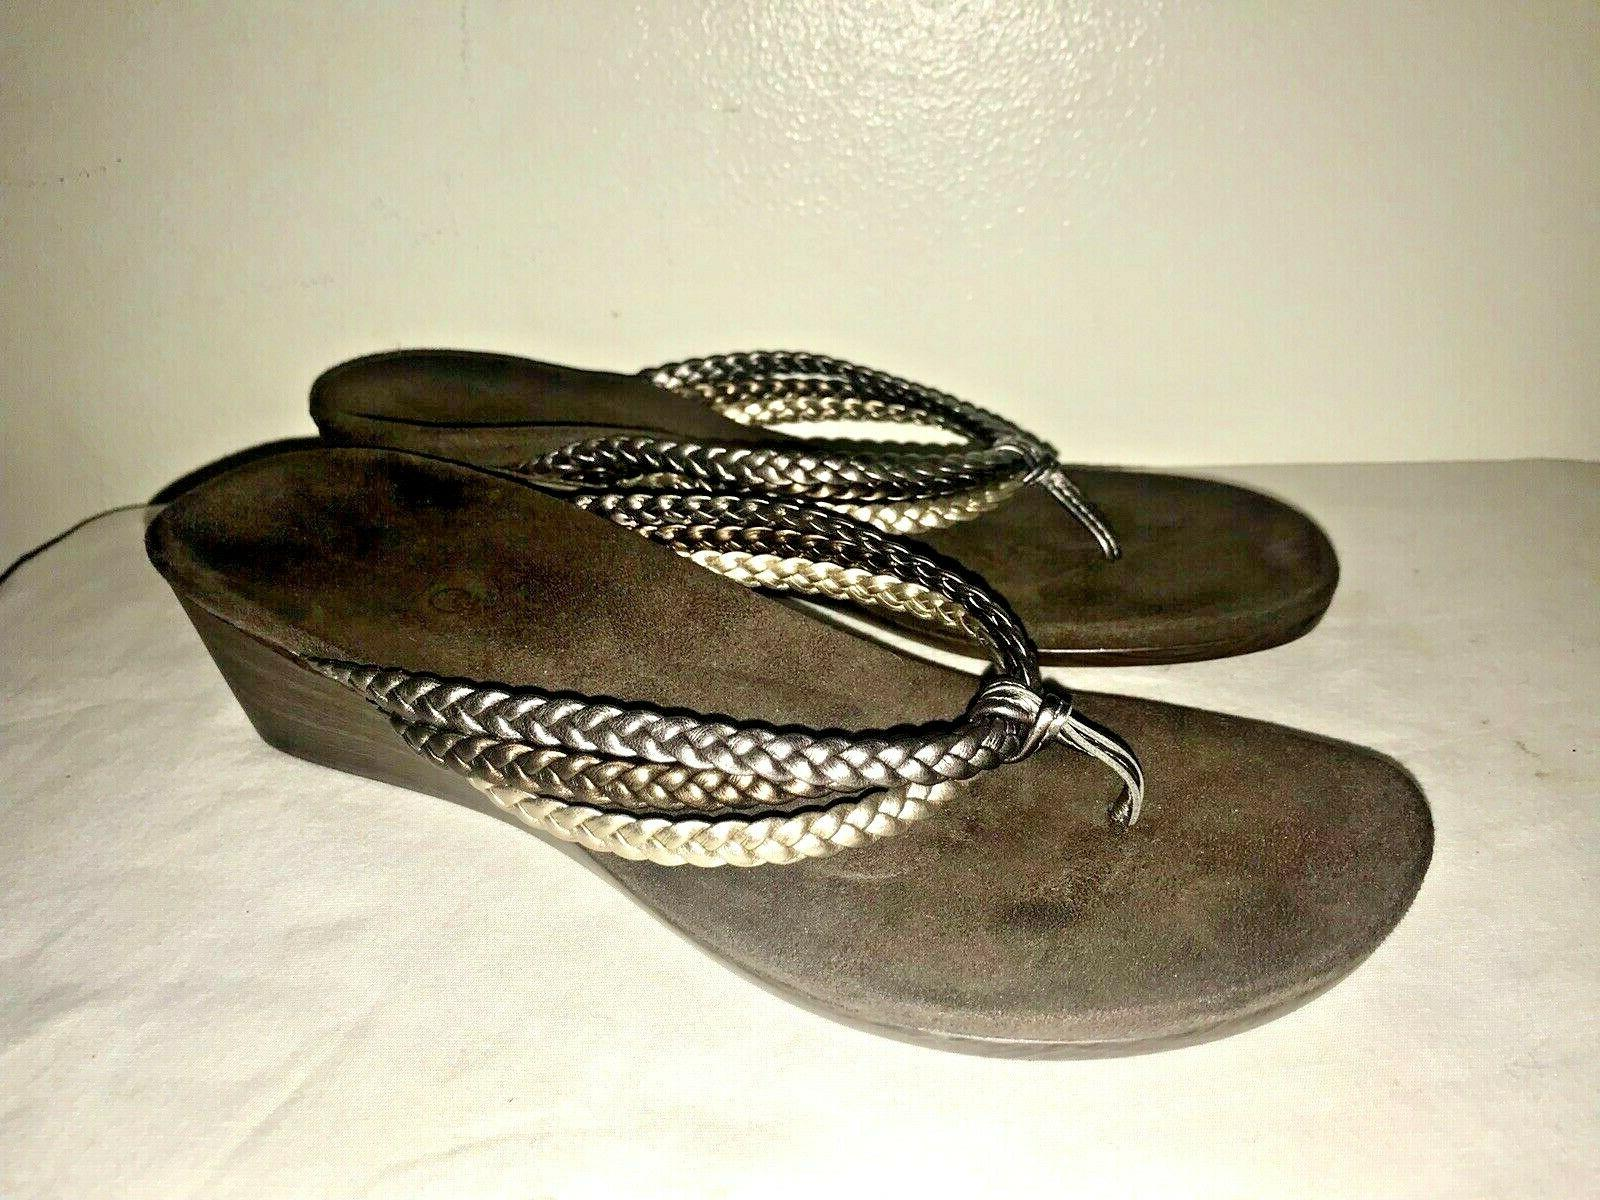 NEW VIONIC Orthaheel Braided Metallic Leather Wedge Thong Size 9 M